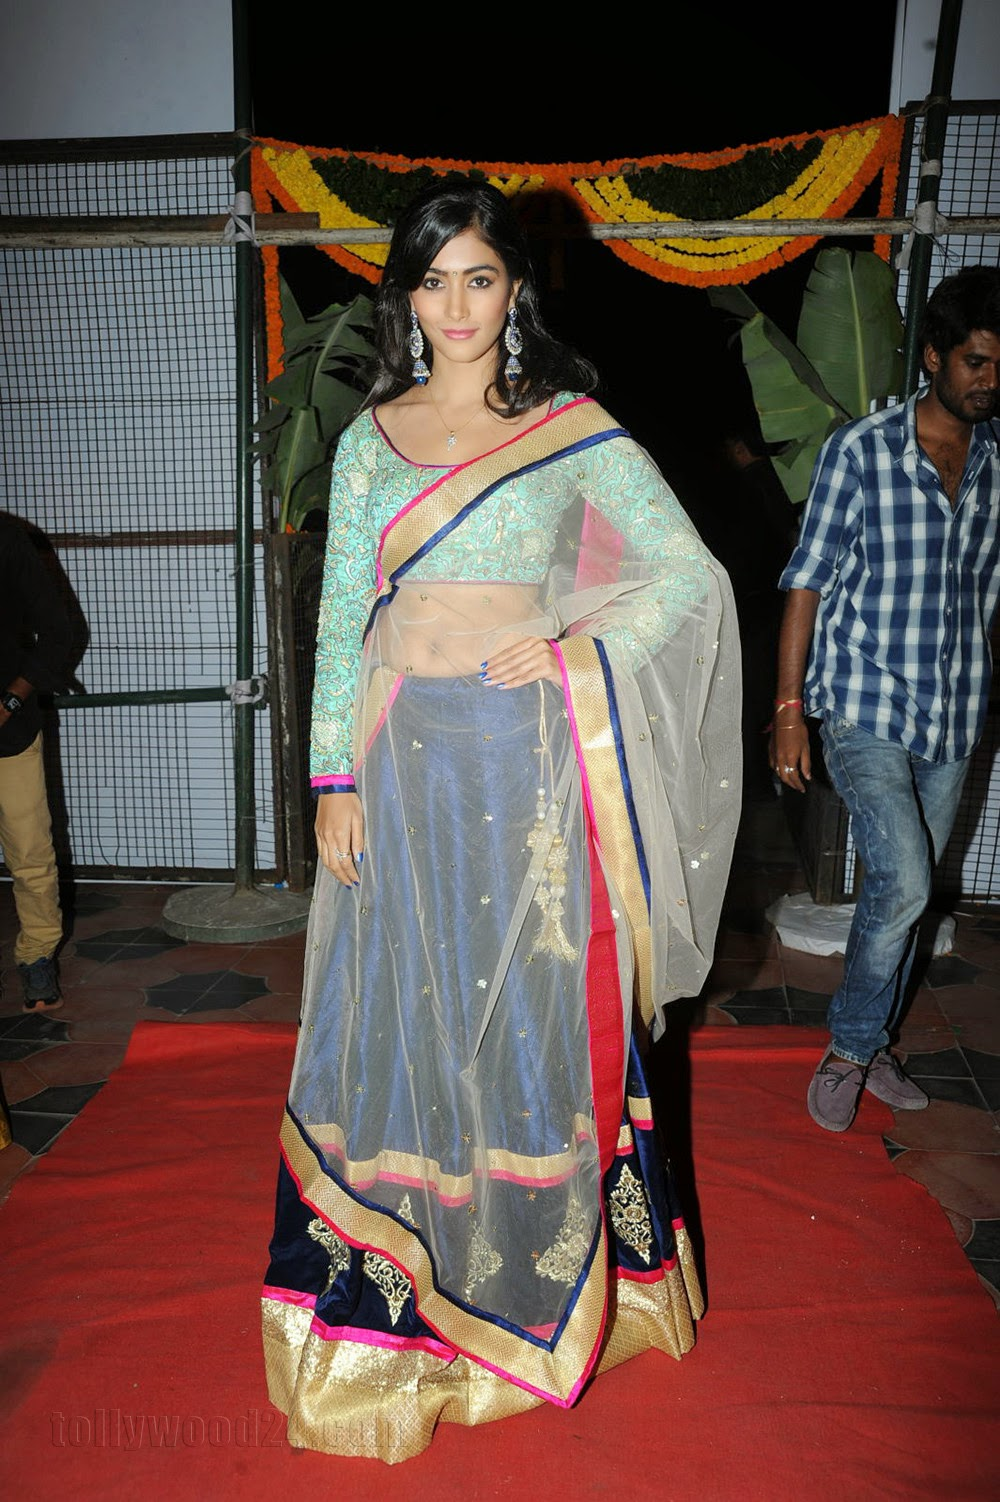 Pooja Hegde Lovely Transparent Lace Saree Sky Blue Full Sleeves Blouse  at Mukunda audio launch